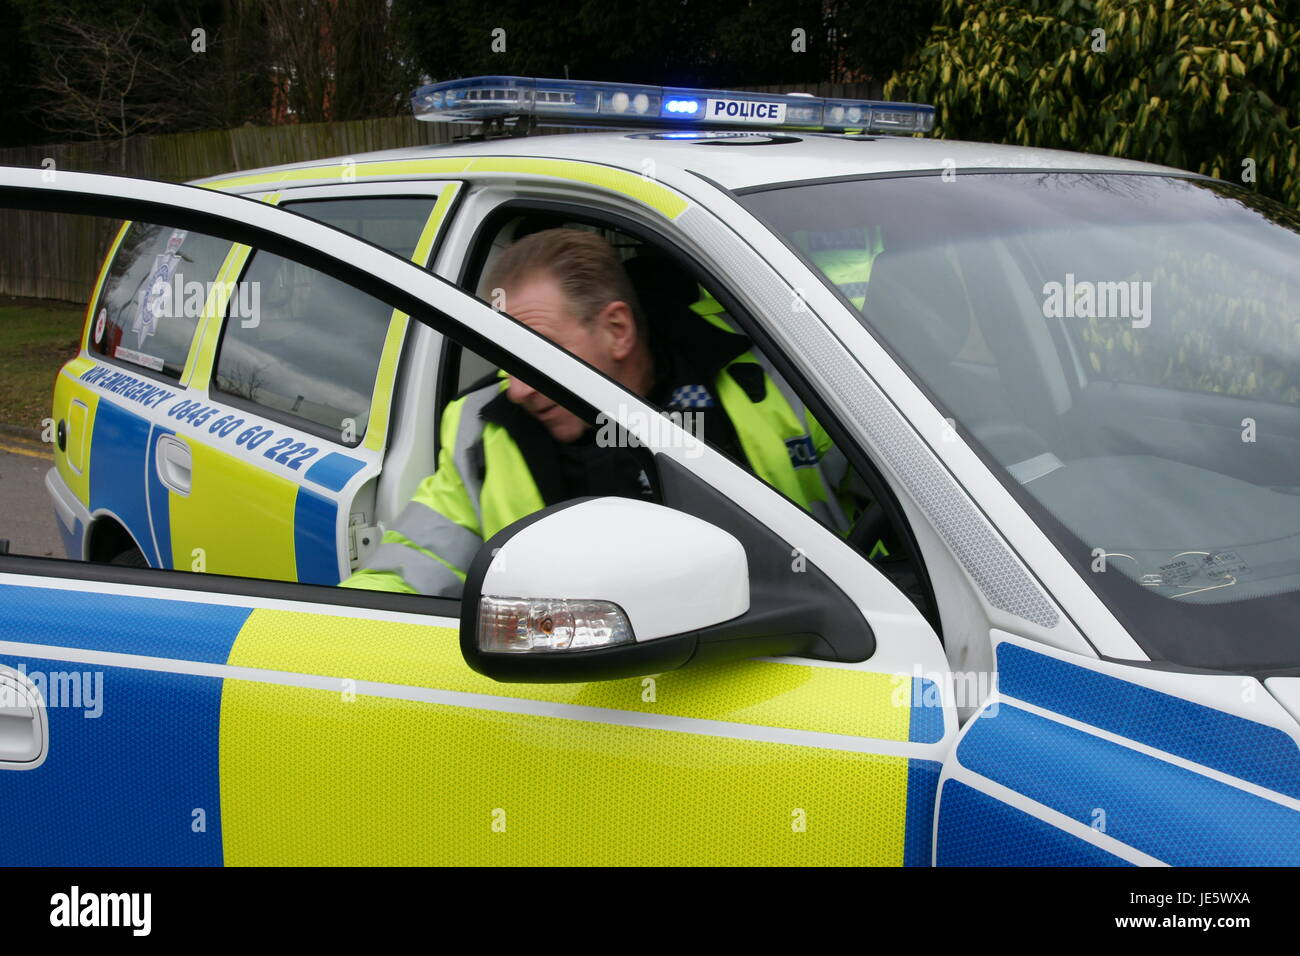 police dealing with terrorist incident - Stock Image